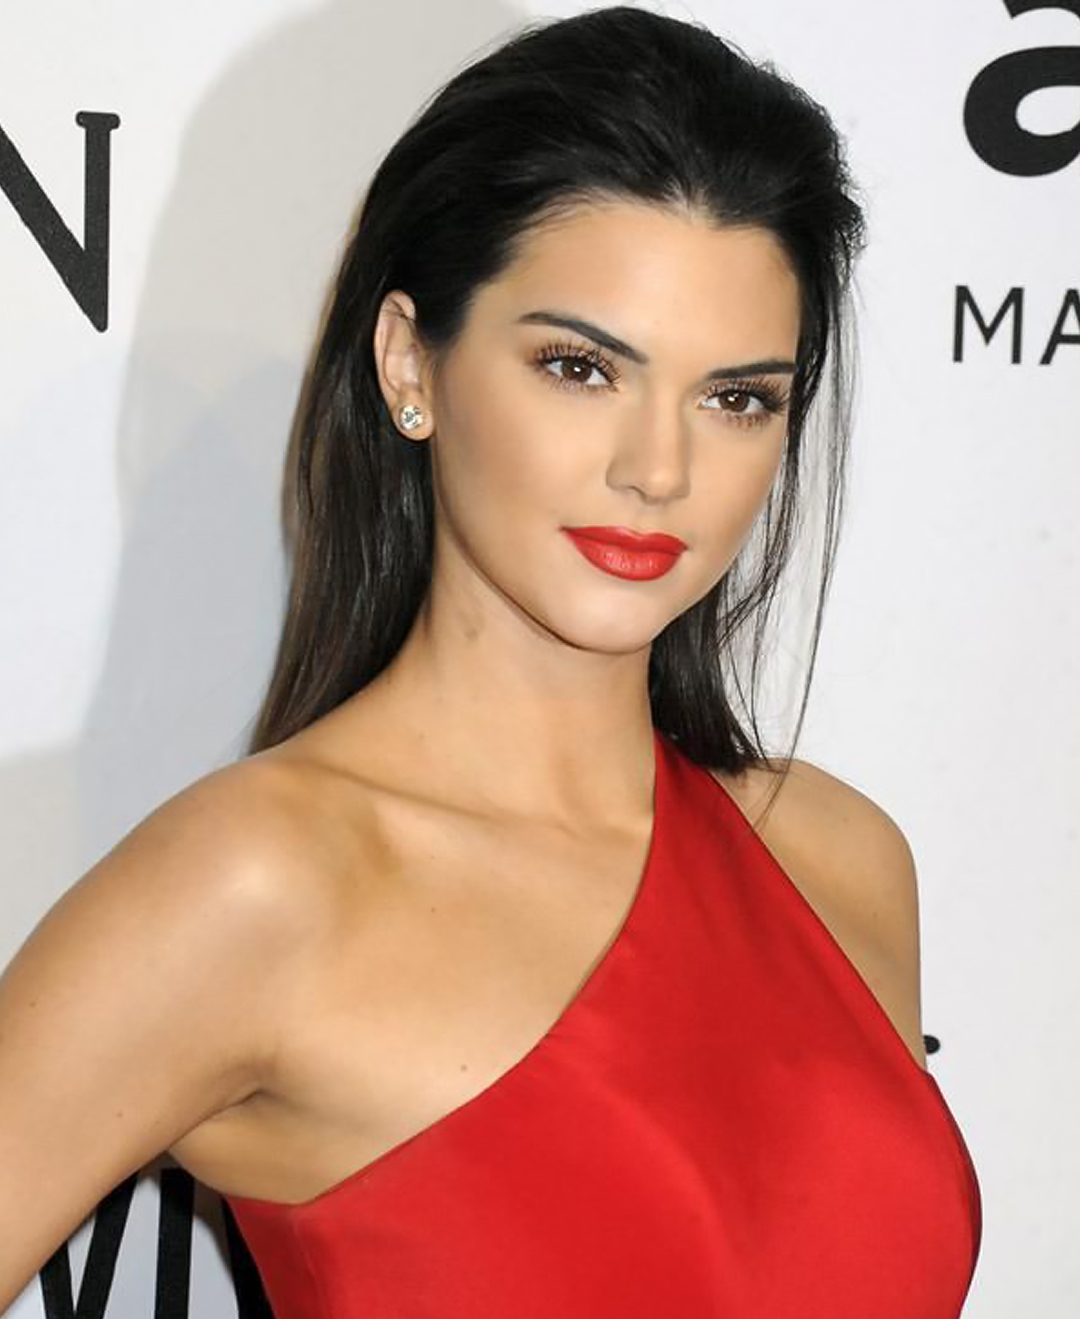 kendall jenner with her hair combed back